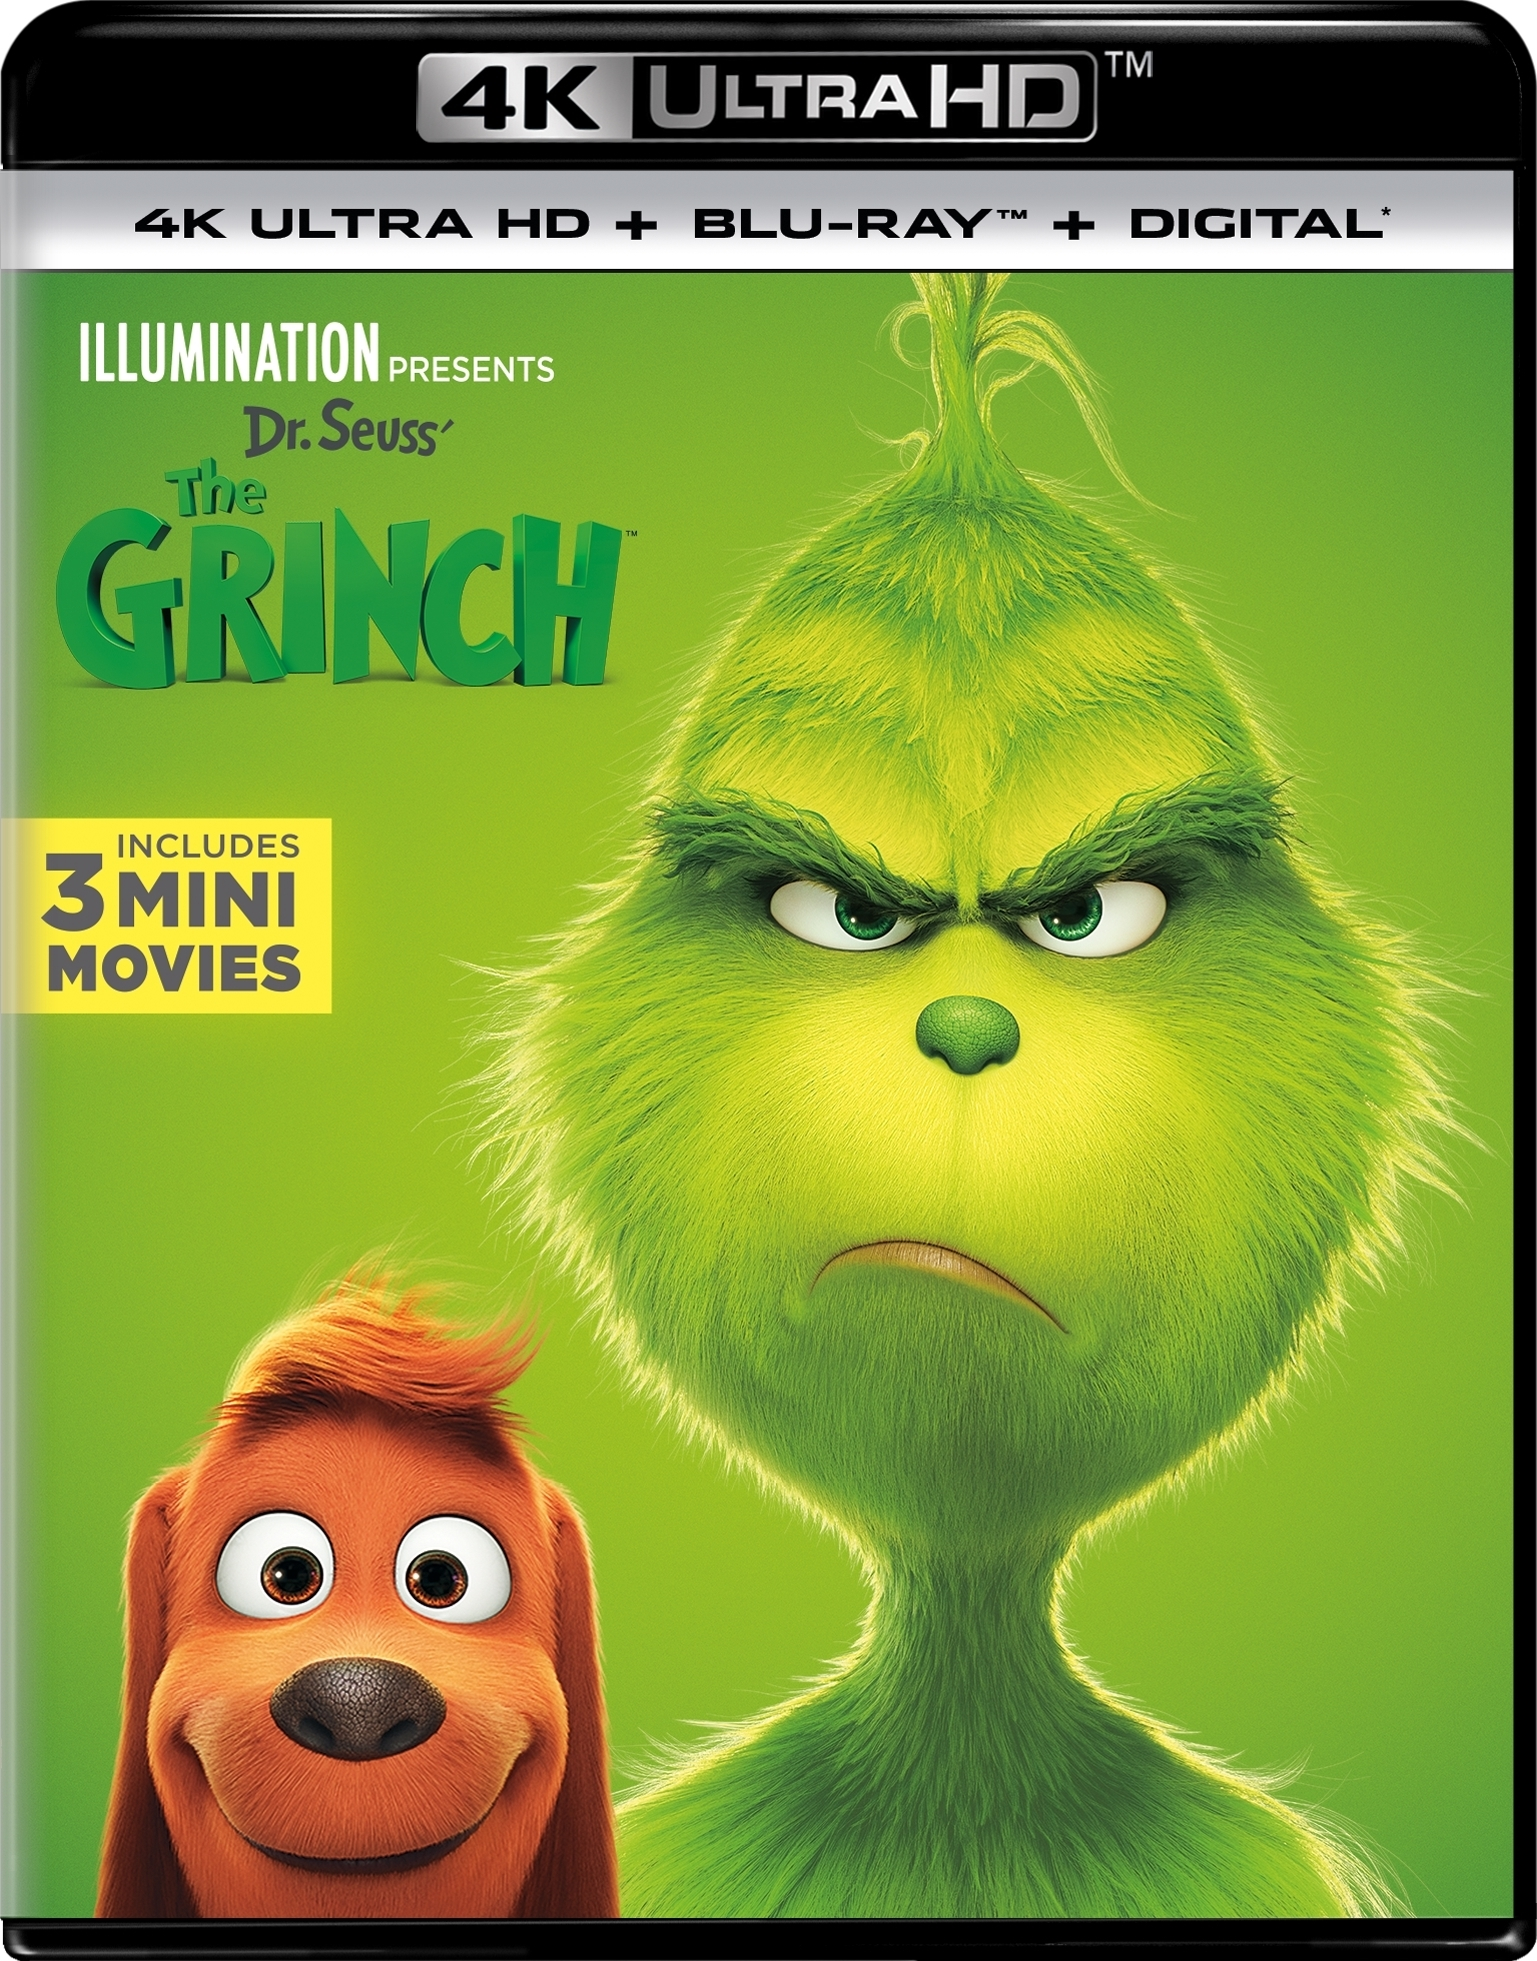 The Grinch (2018) poster image